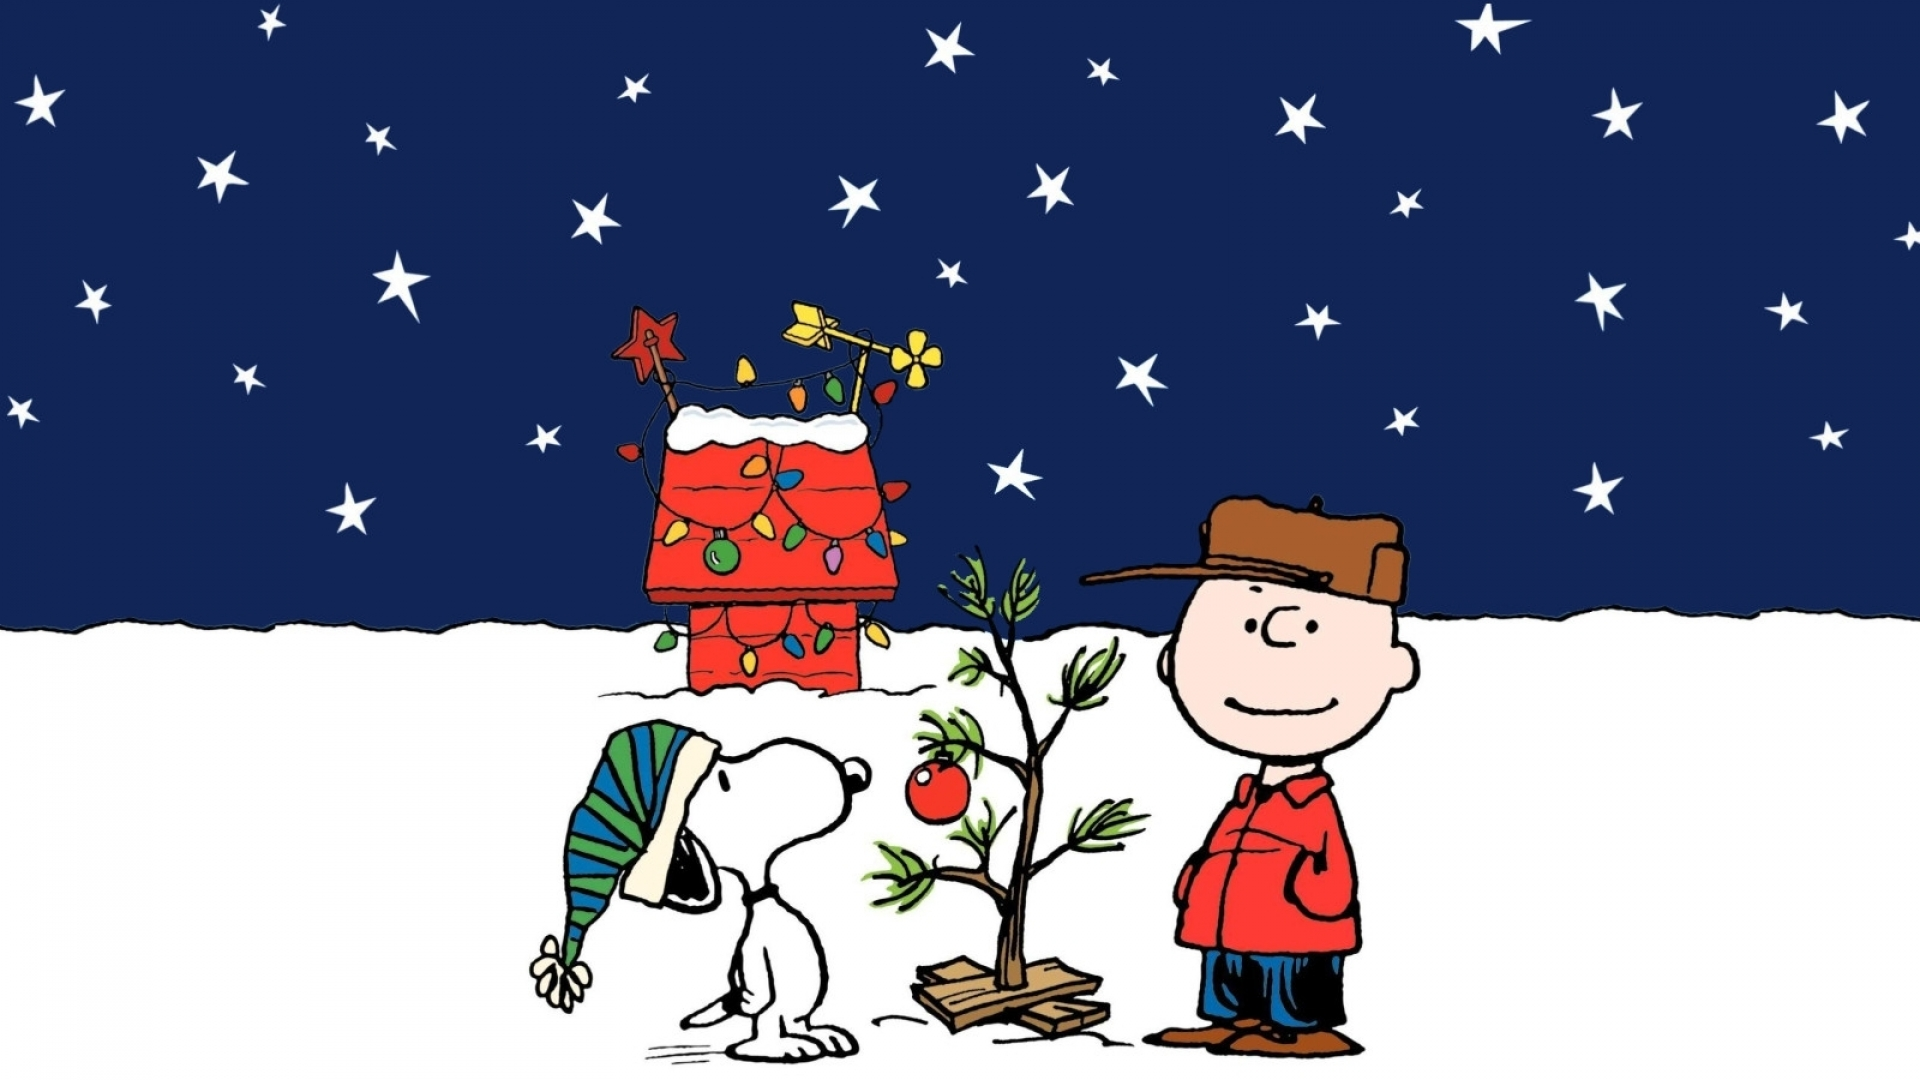 winter wallpaper charlie brown - photo #15